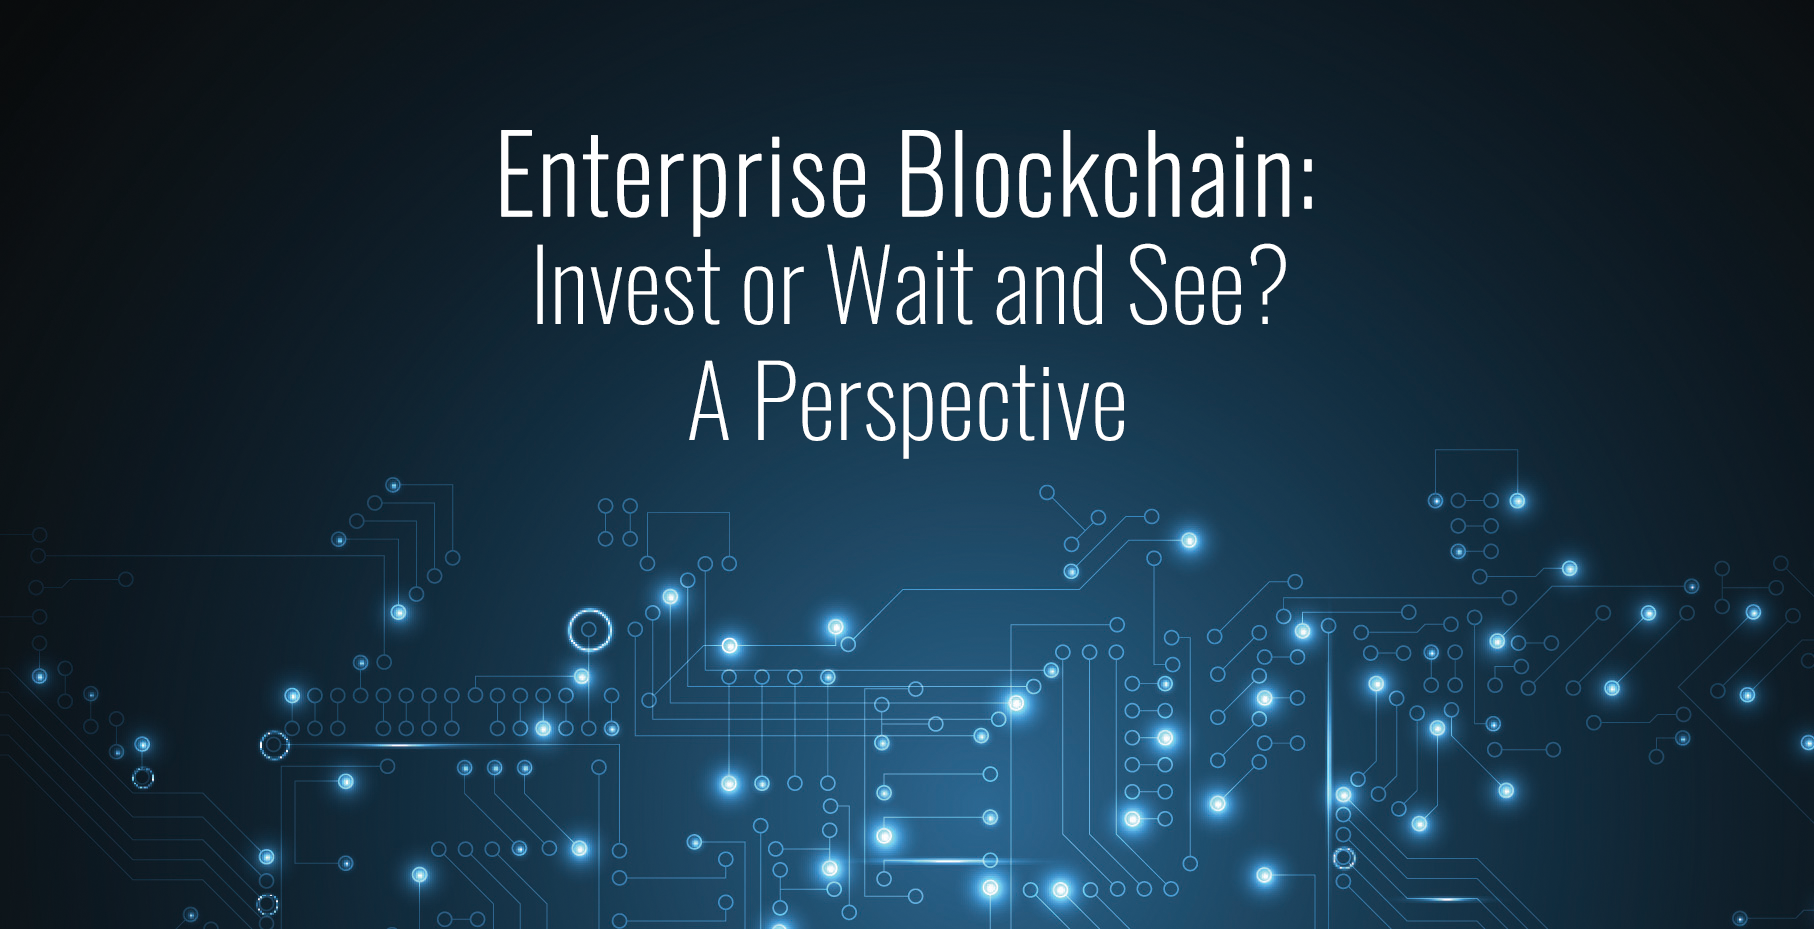 Enterprise Blockchain: Invest or Wait and See? A Perspective.